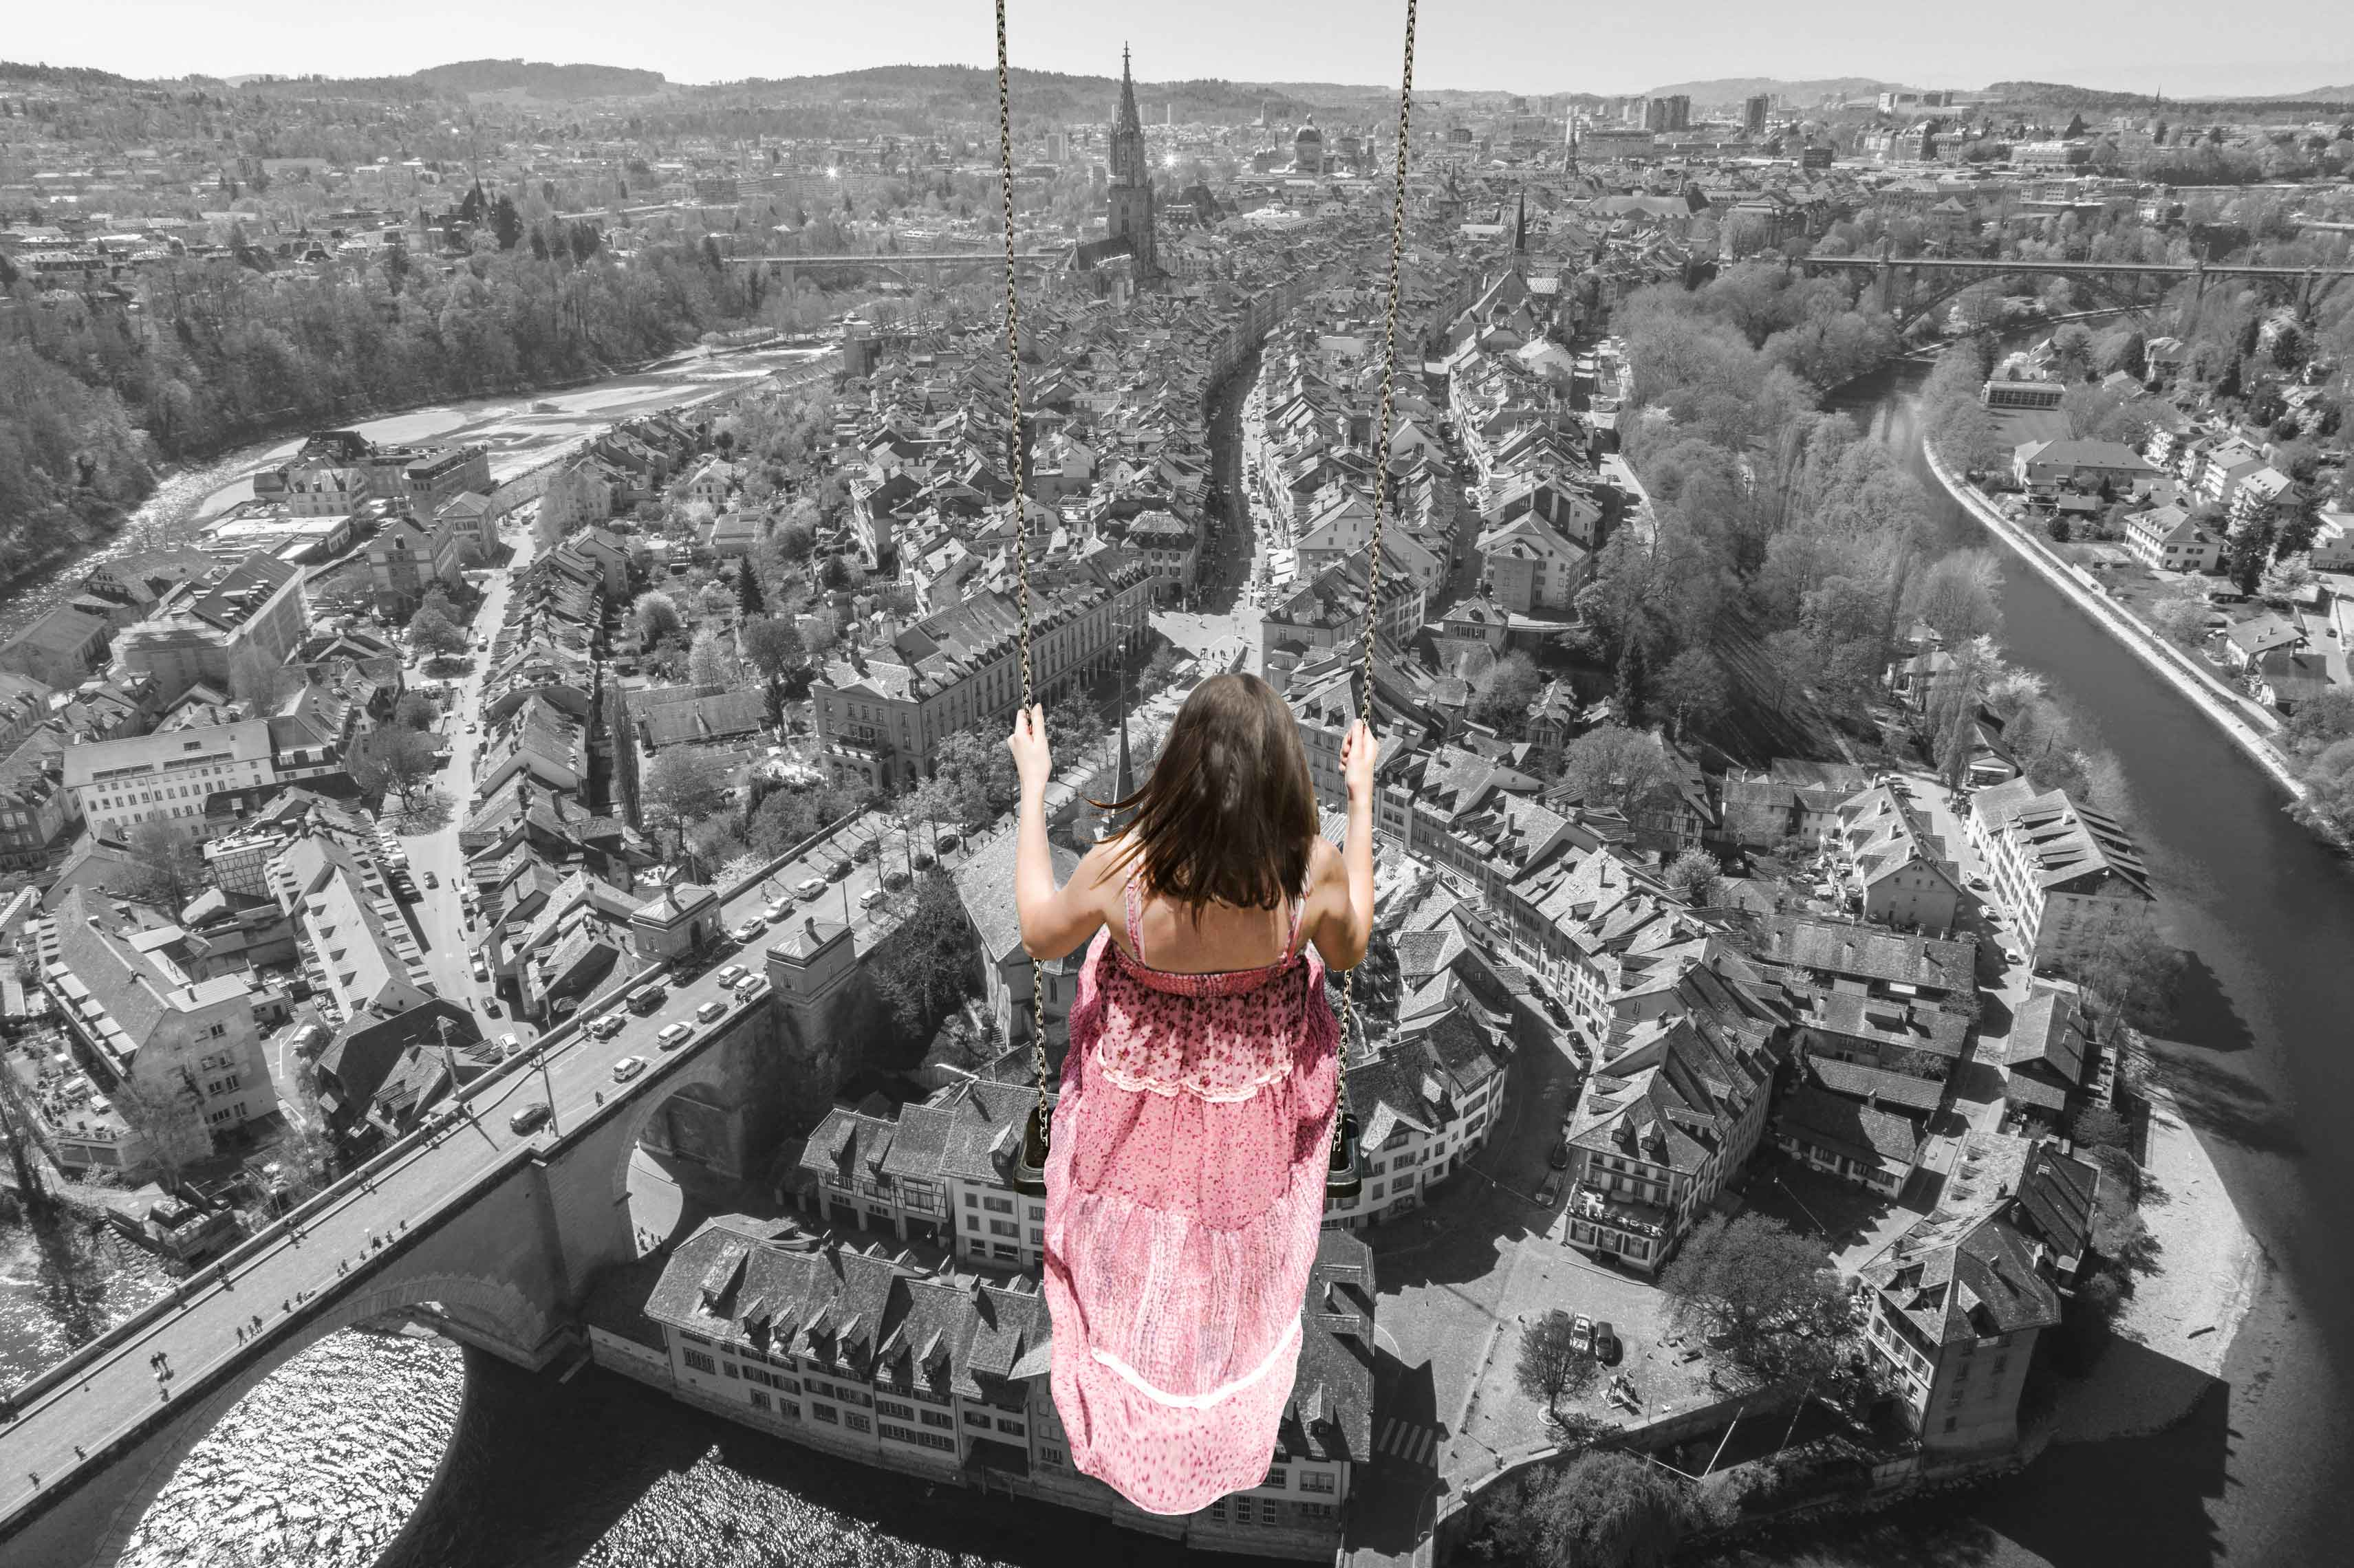 Br24 Composing: young girl in flower dress on a swing high above a city scenery in black and white / Br24 Composing: junges Mädchen im Blumenkleid auf einer Schaukel hoch über einer schwarz-weißen Stadtszzene